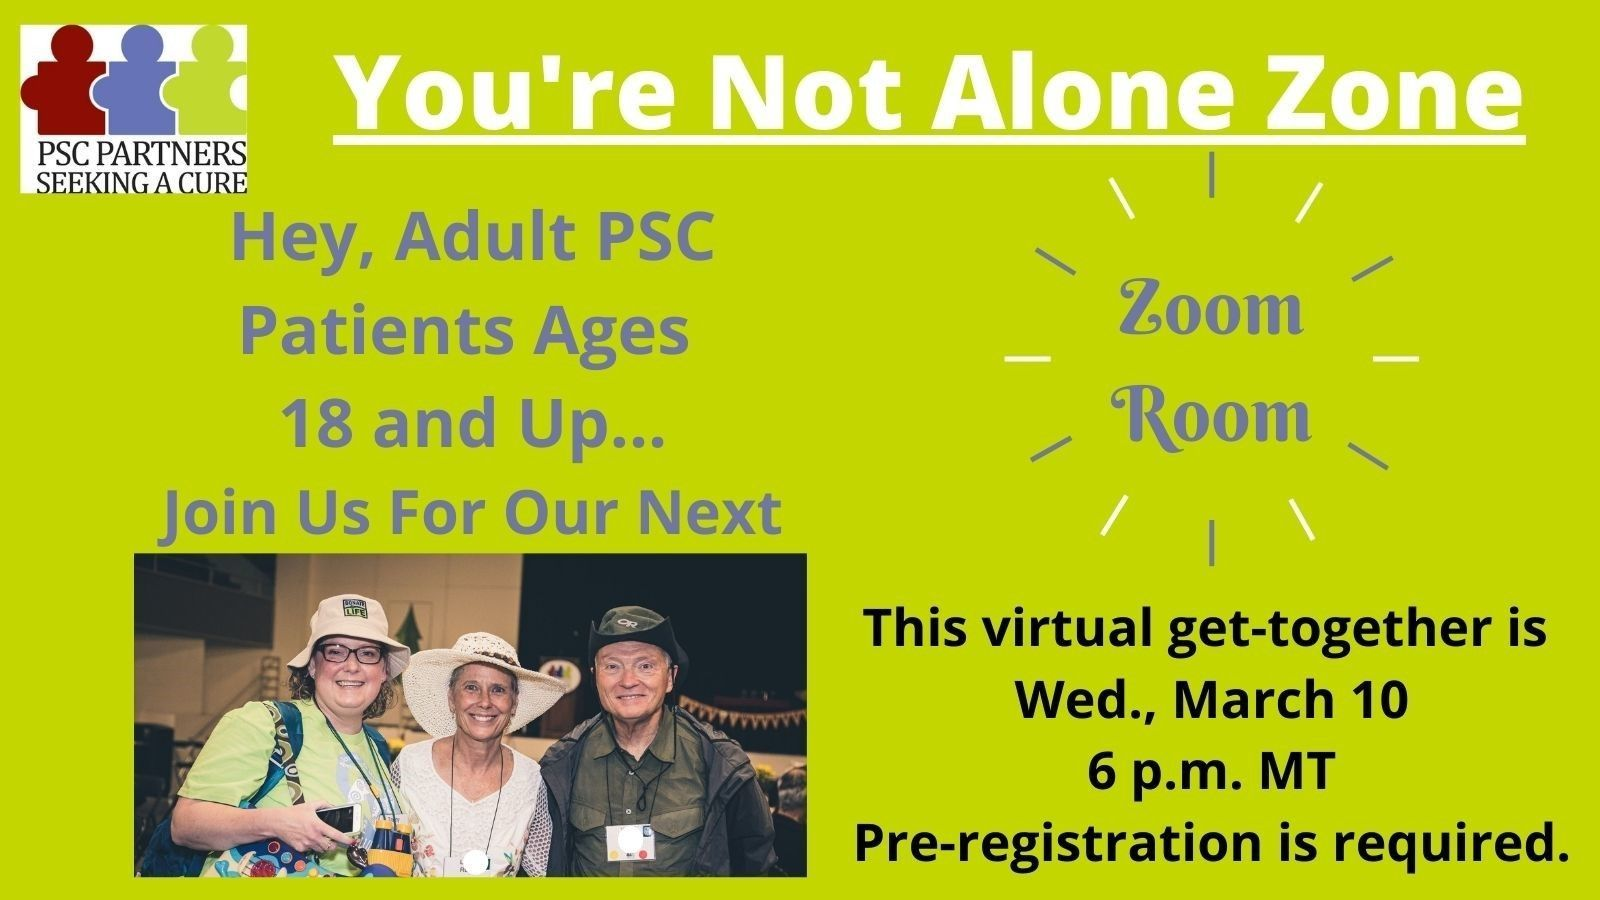 ZoomRoom for PSC Adult Patients Ages 18 and Up